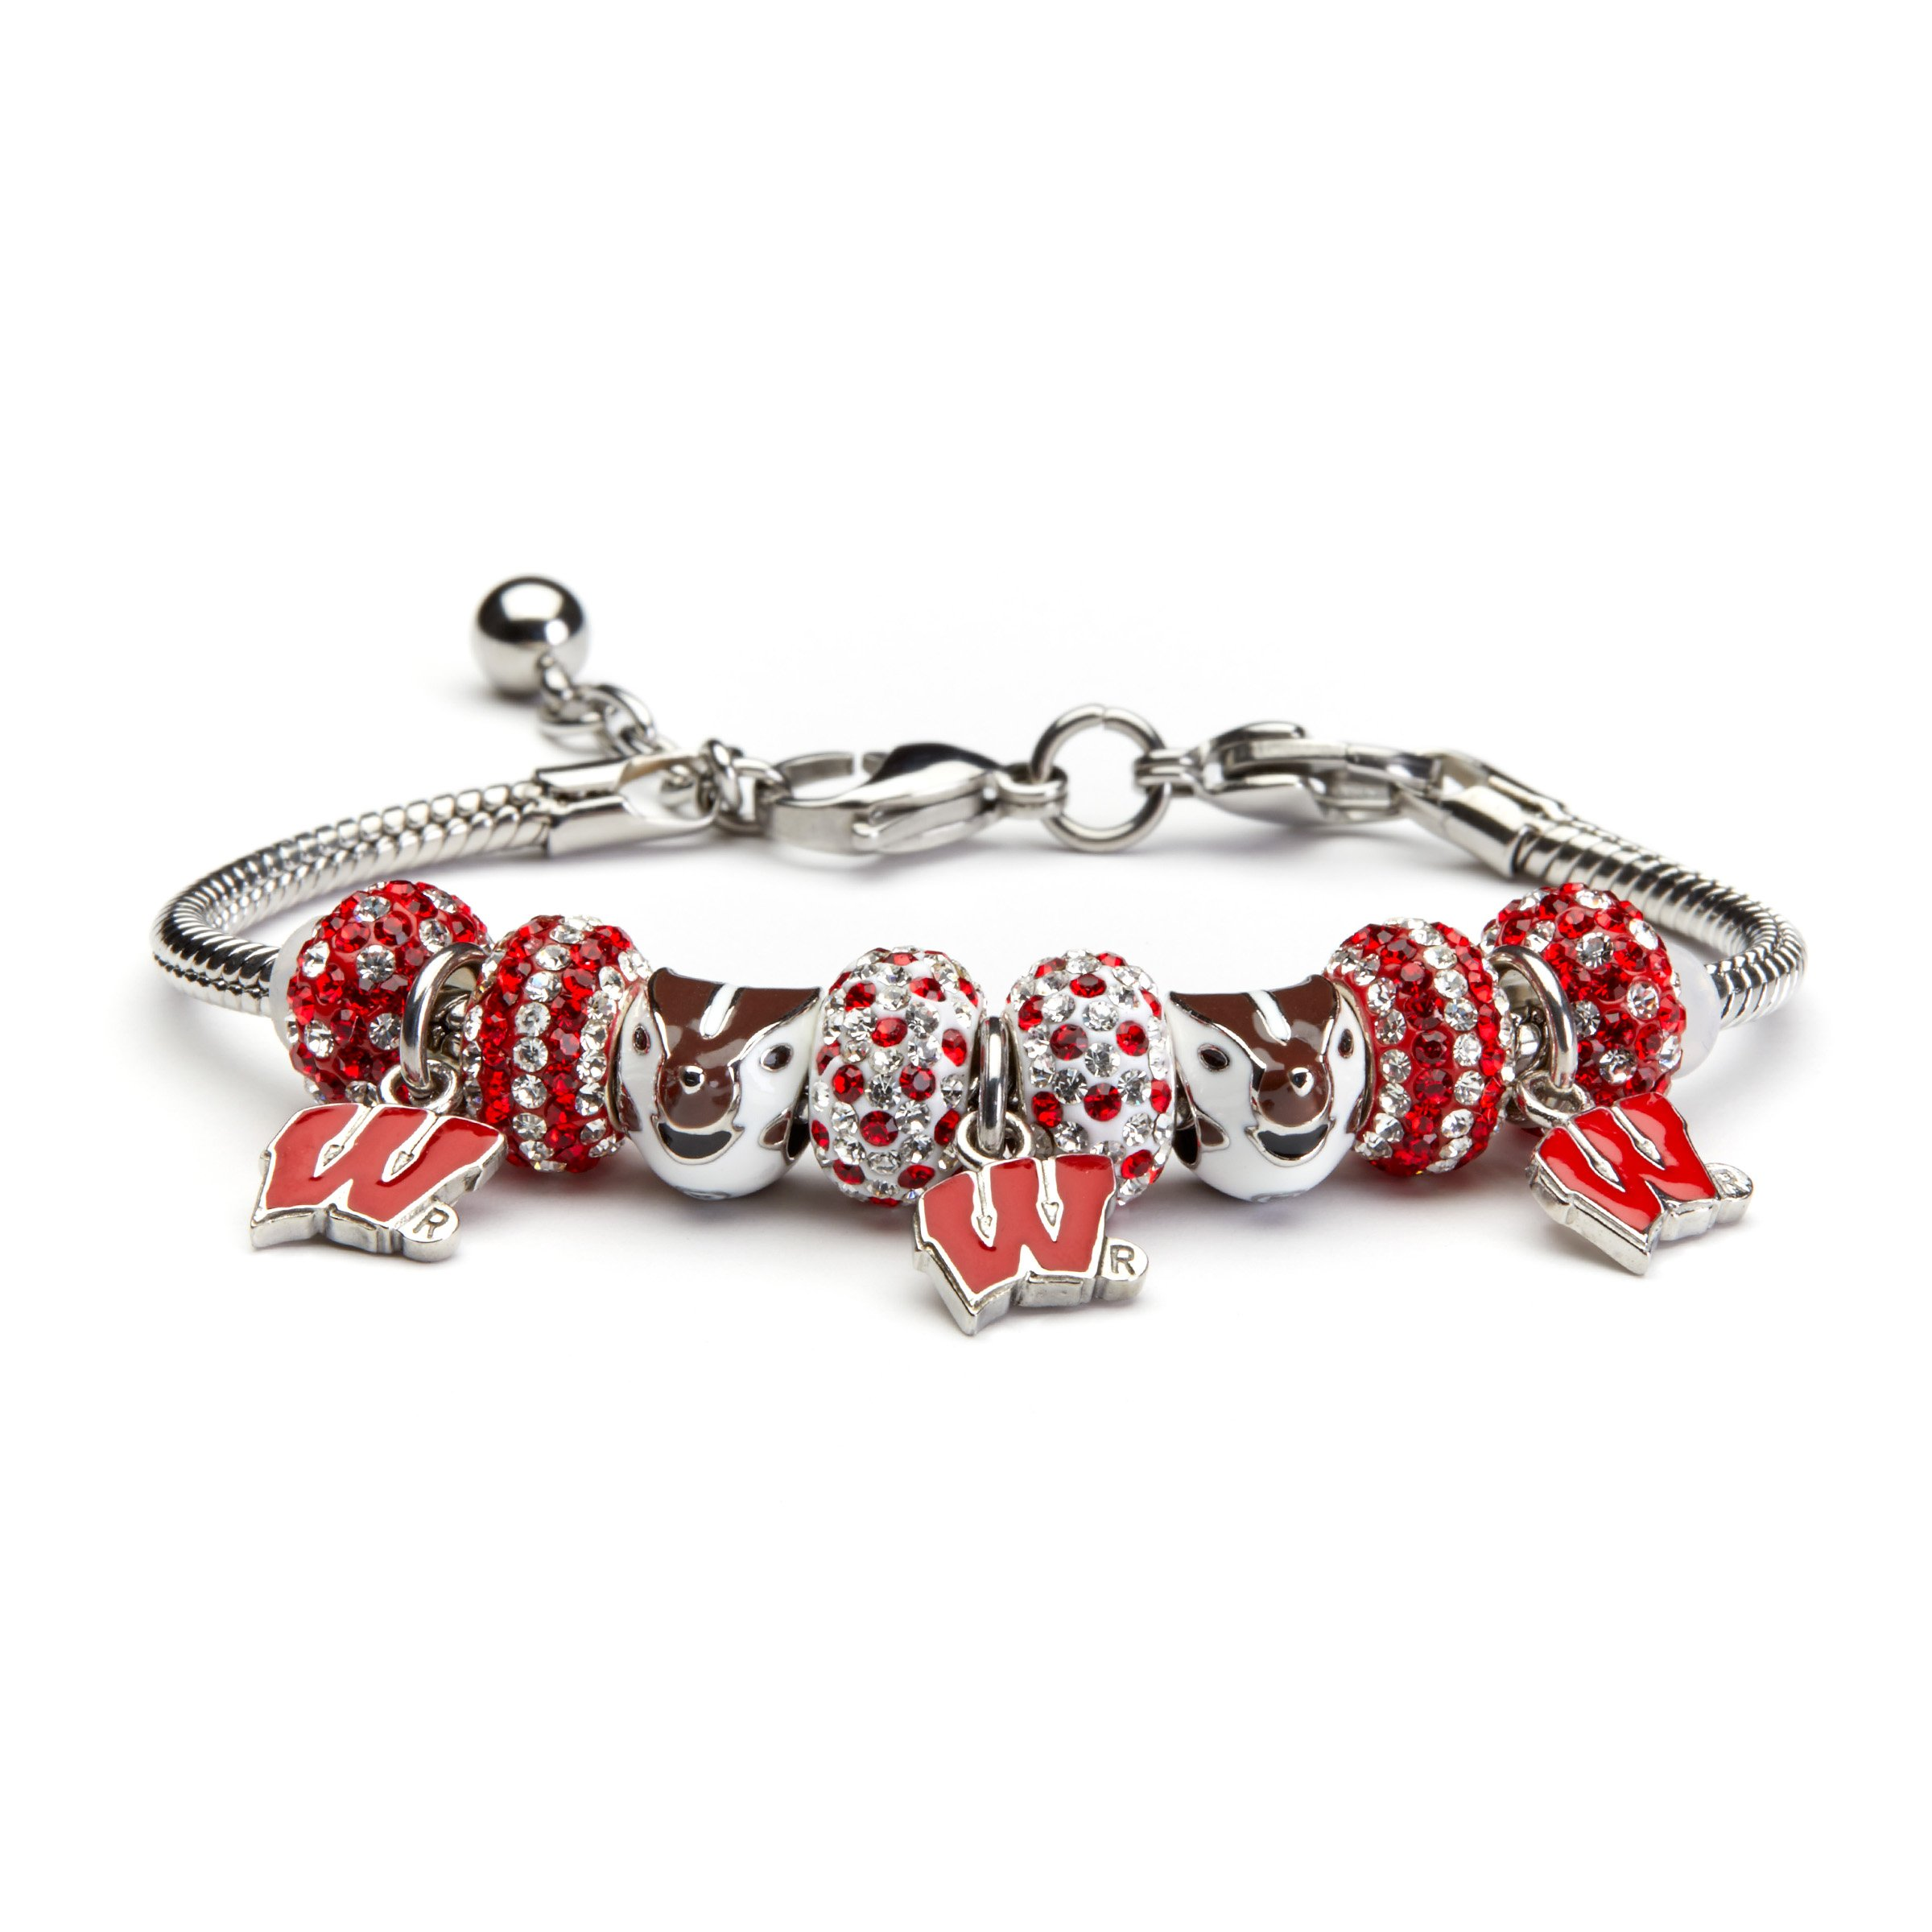 Stone Armory University of Wisconsin Bracelet | UW Bracelet | Officially Licensed University of Wisconsin Jewelry